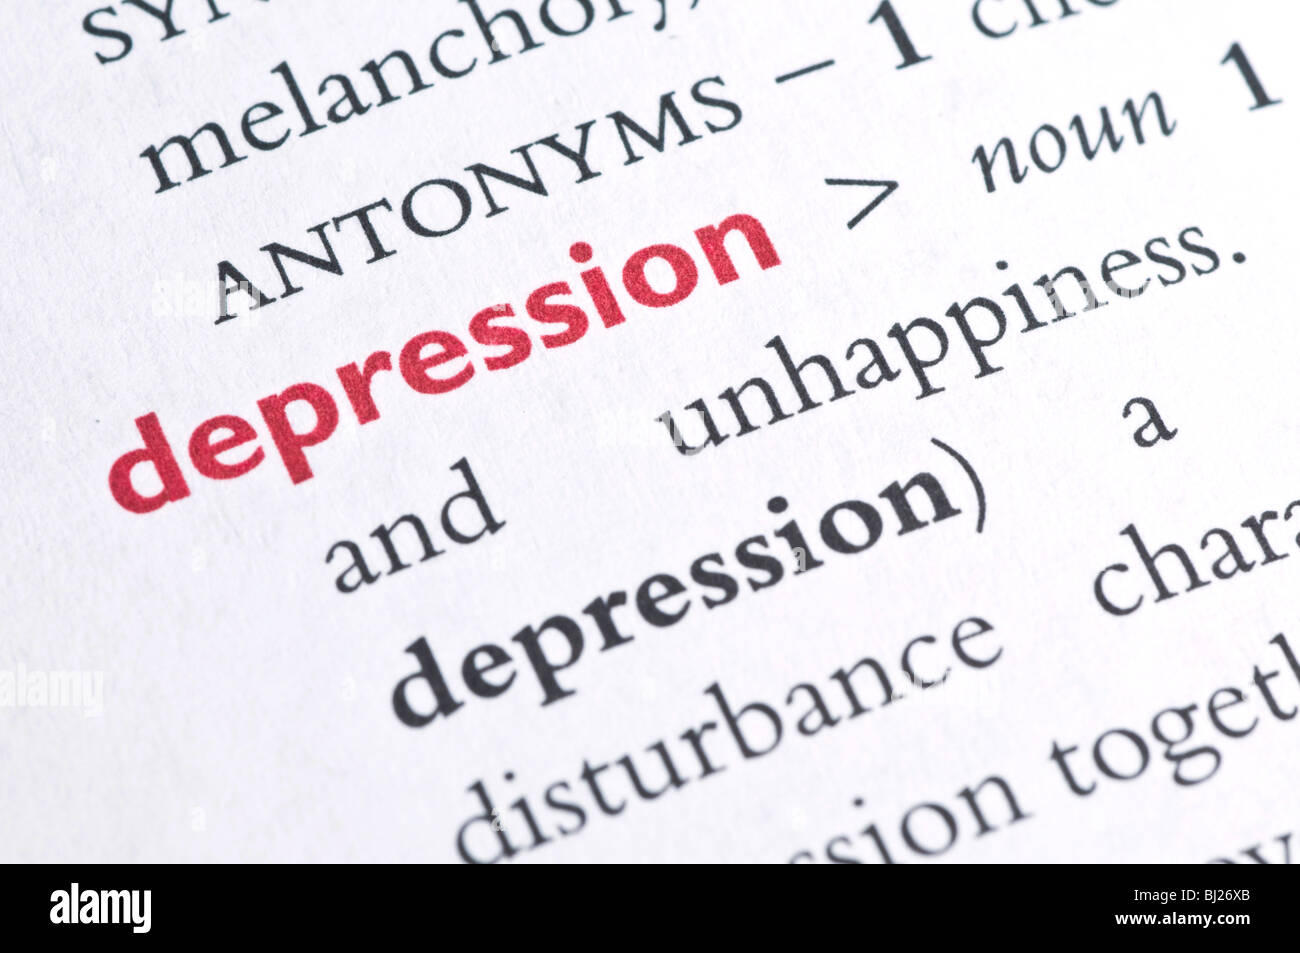 Dictionary definition of depression - Stock Image